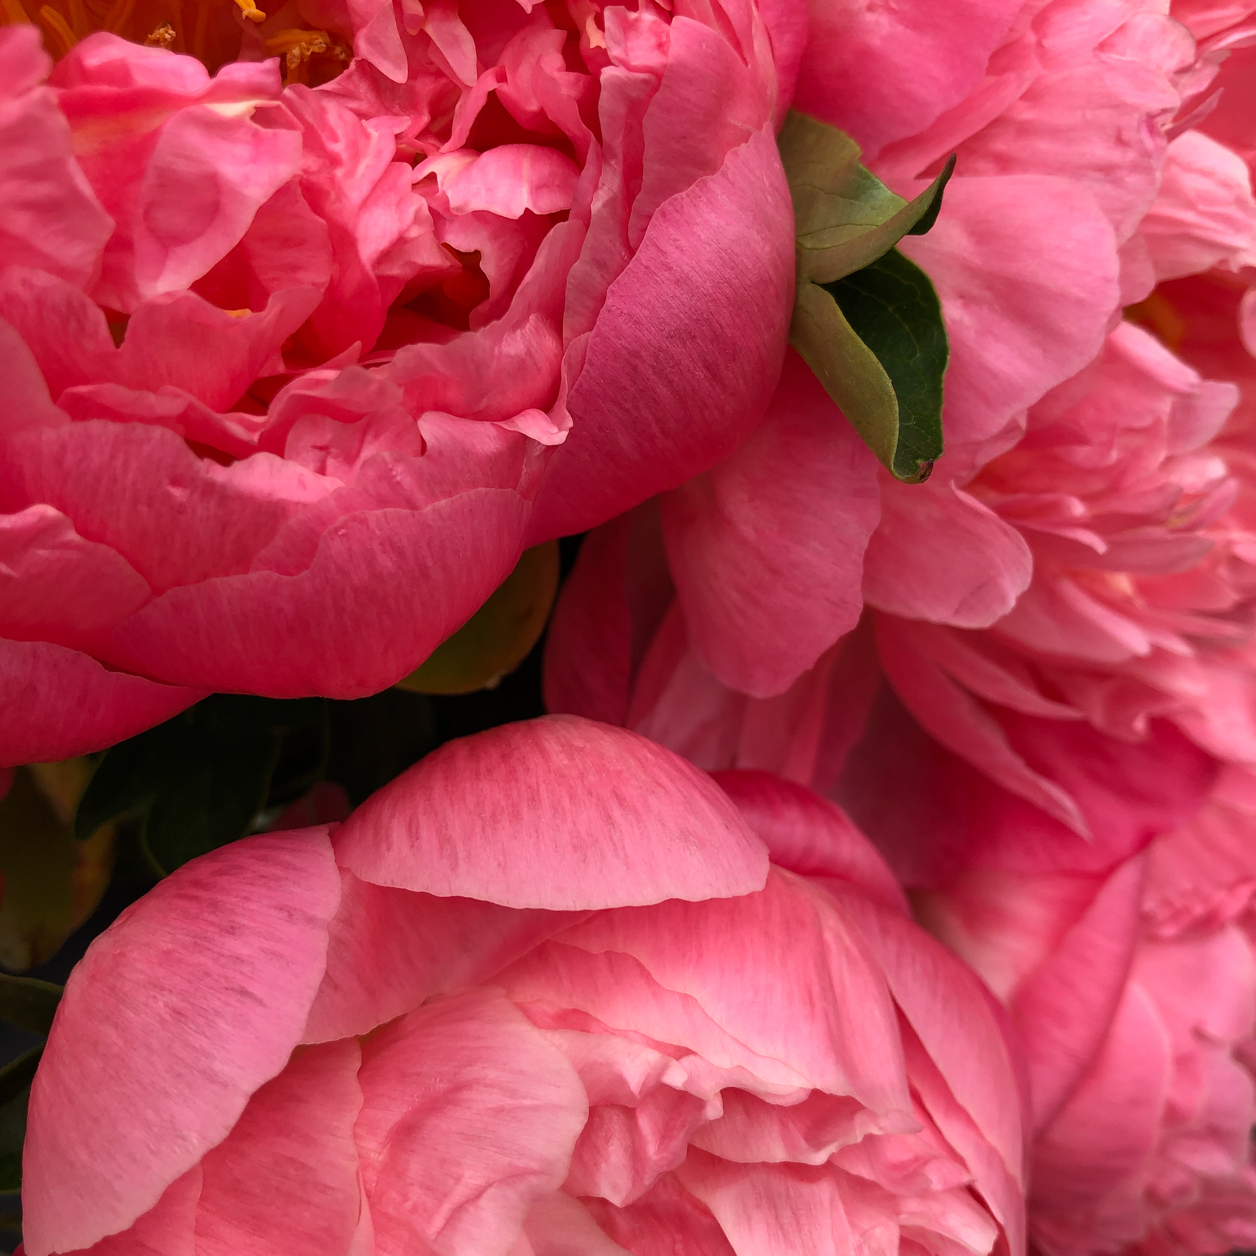 Closeup of three bright pink peonies with two small green leaves peeking through